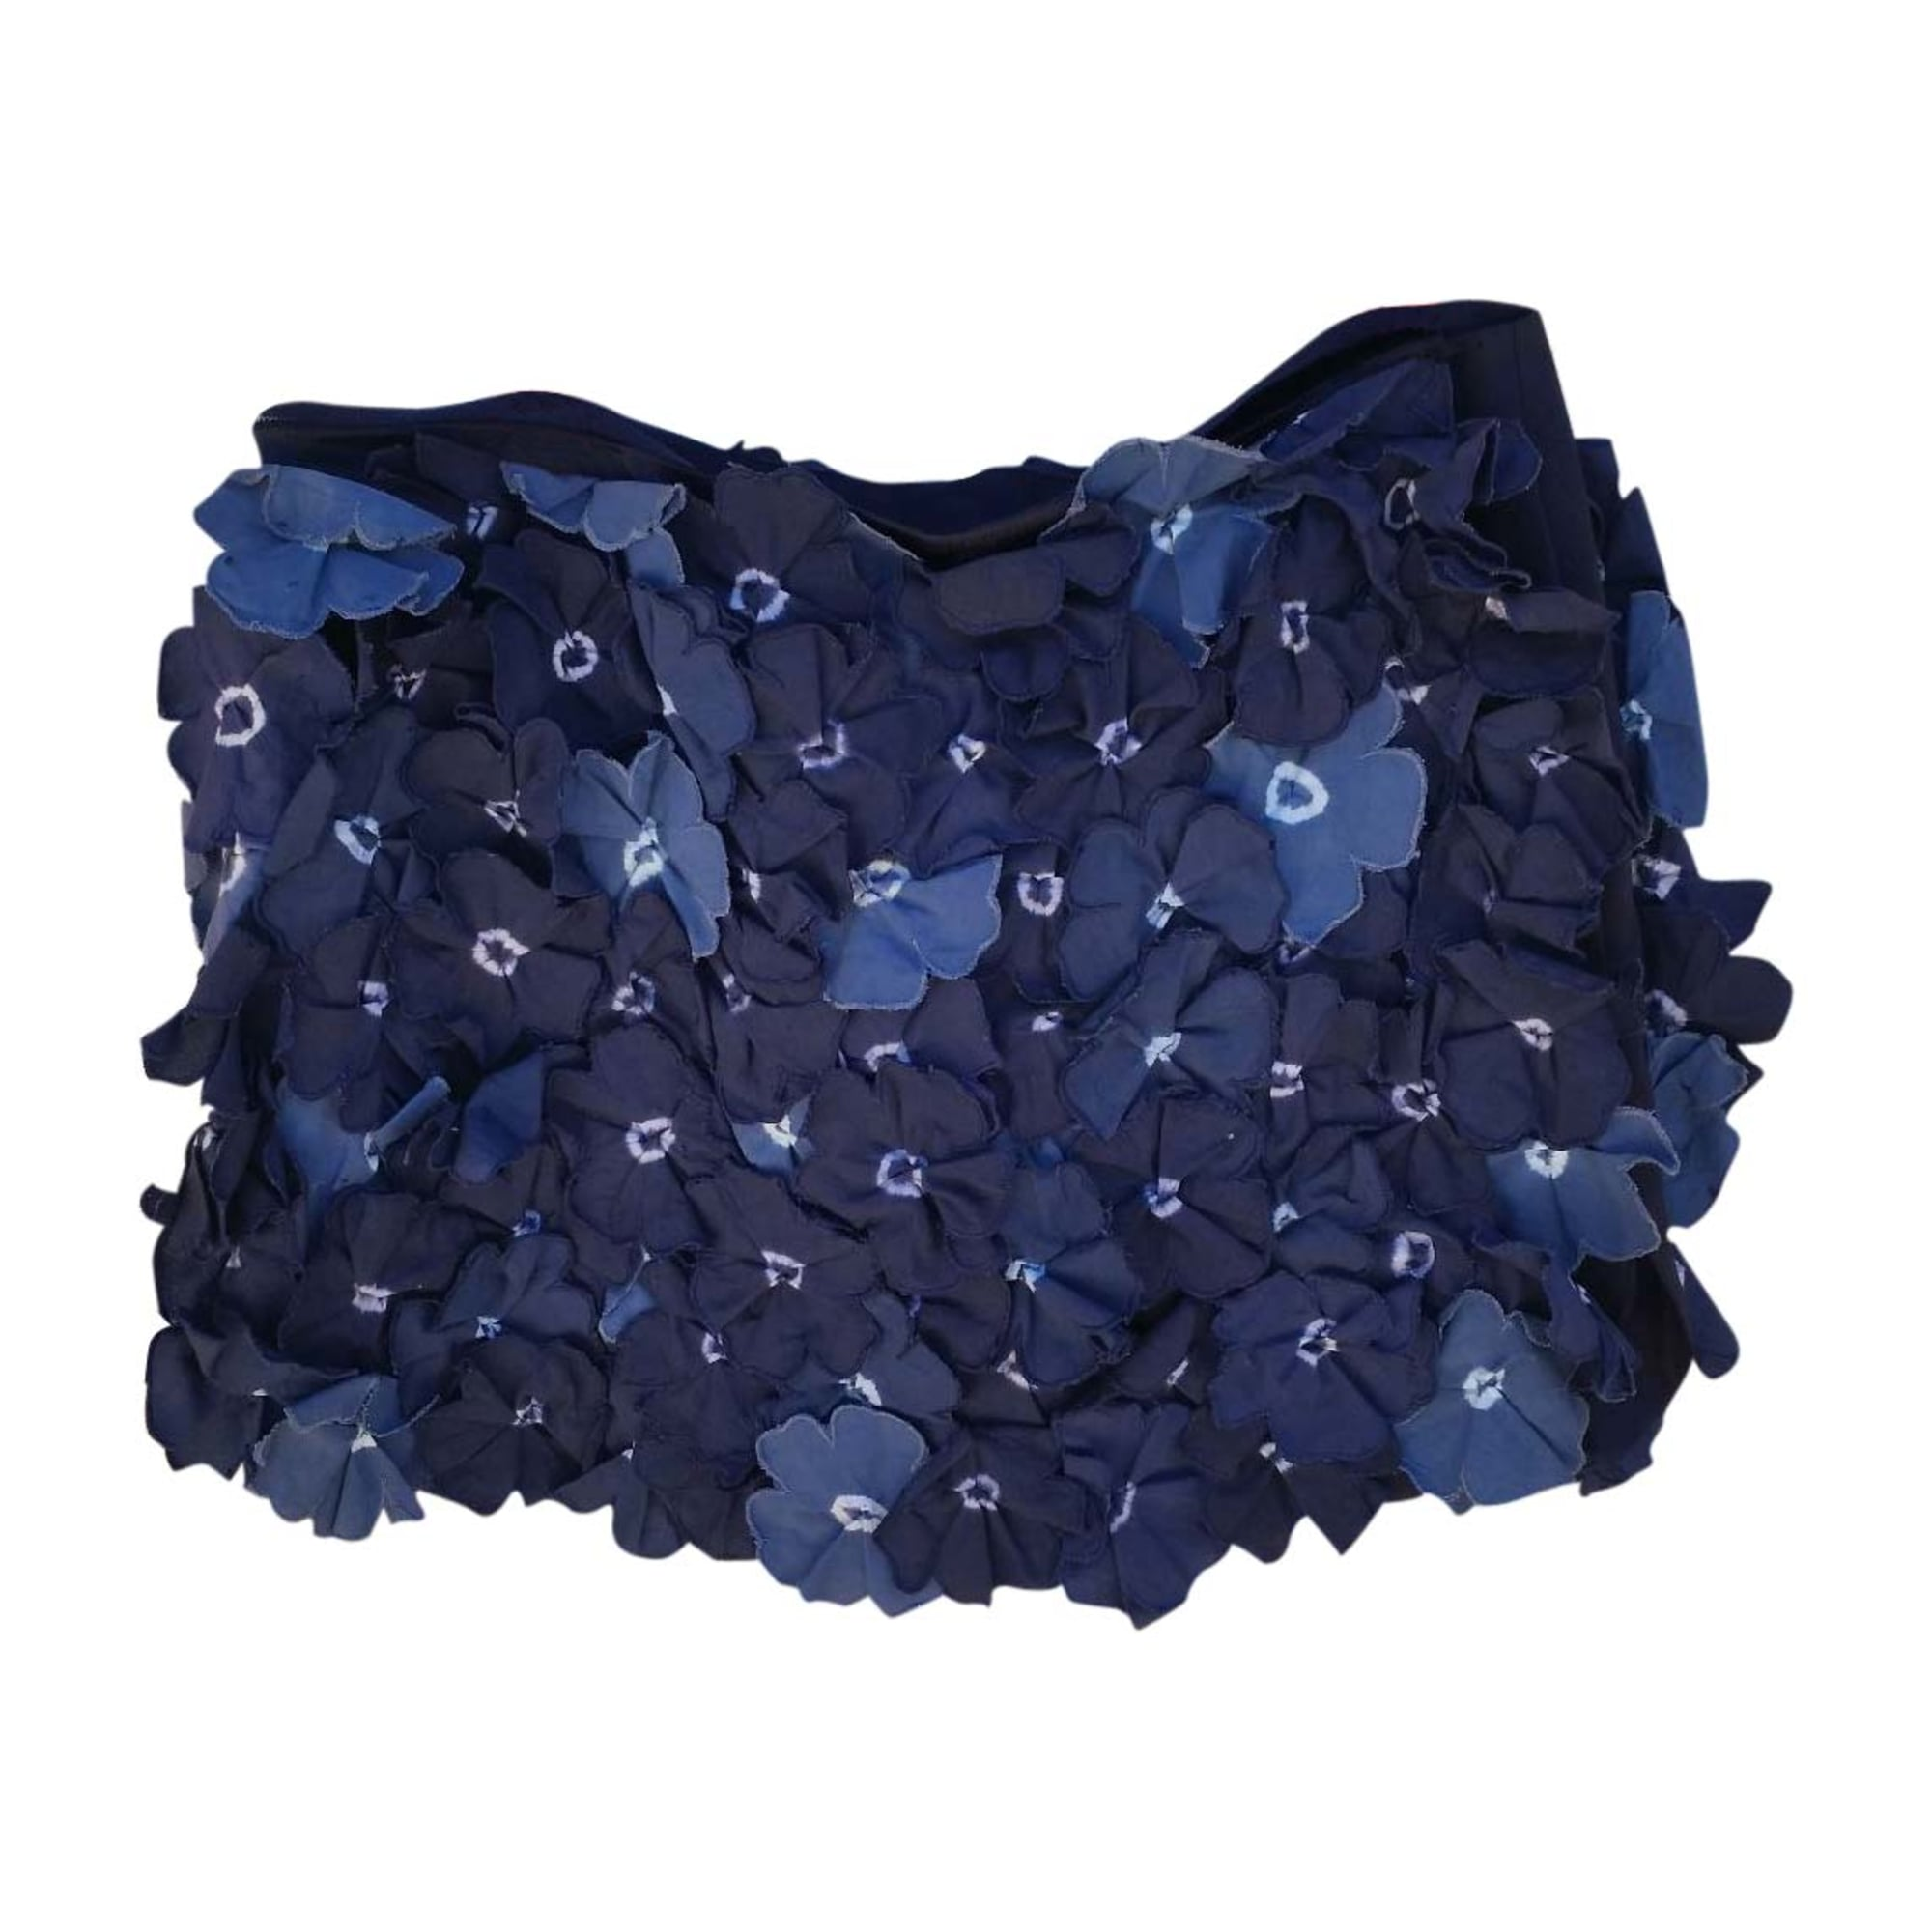 Mini Skirt VANESSA BRUNO Blue, navy, turquoise